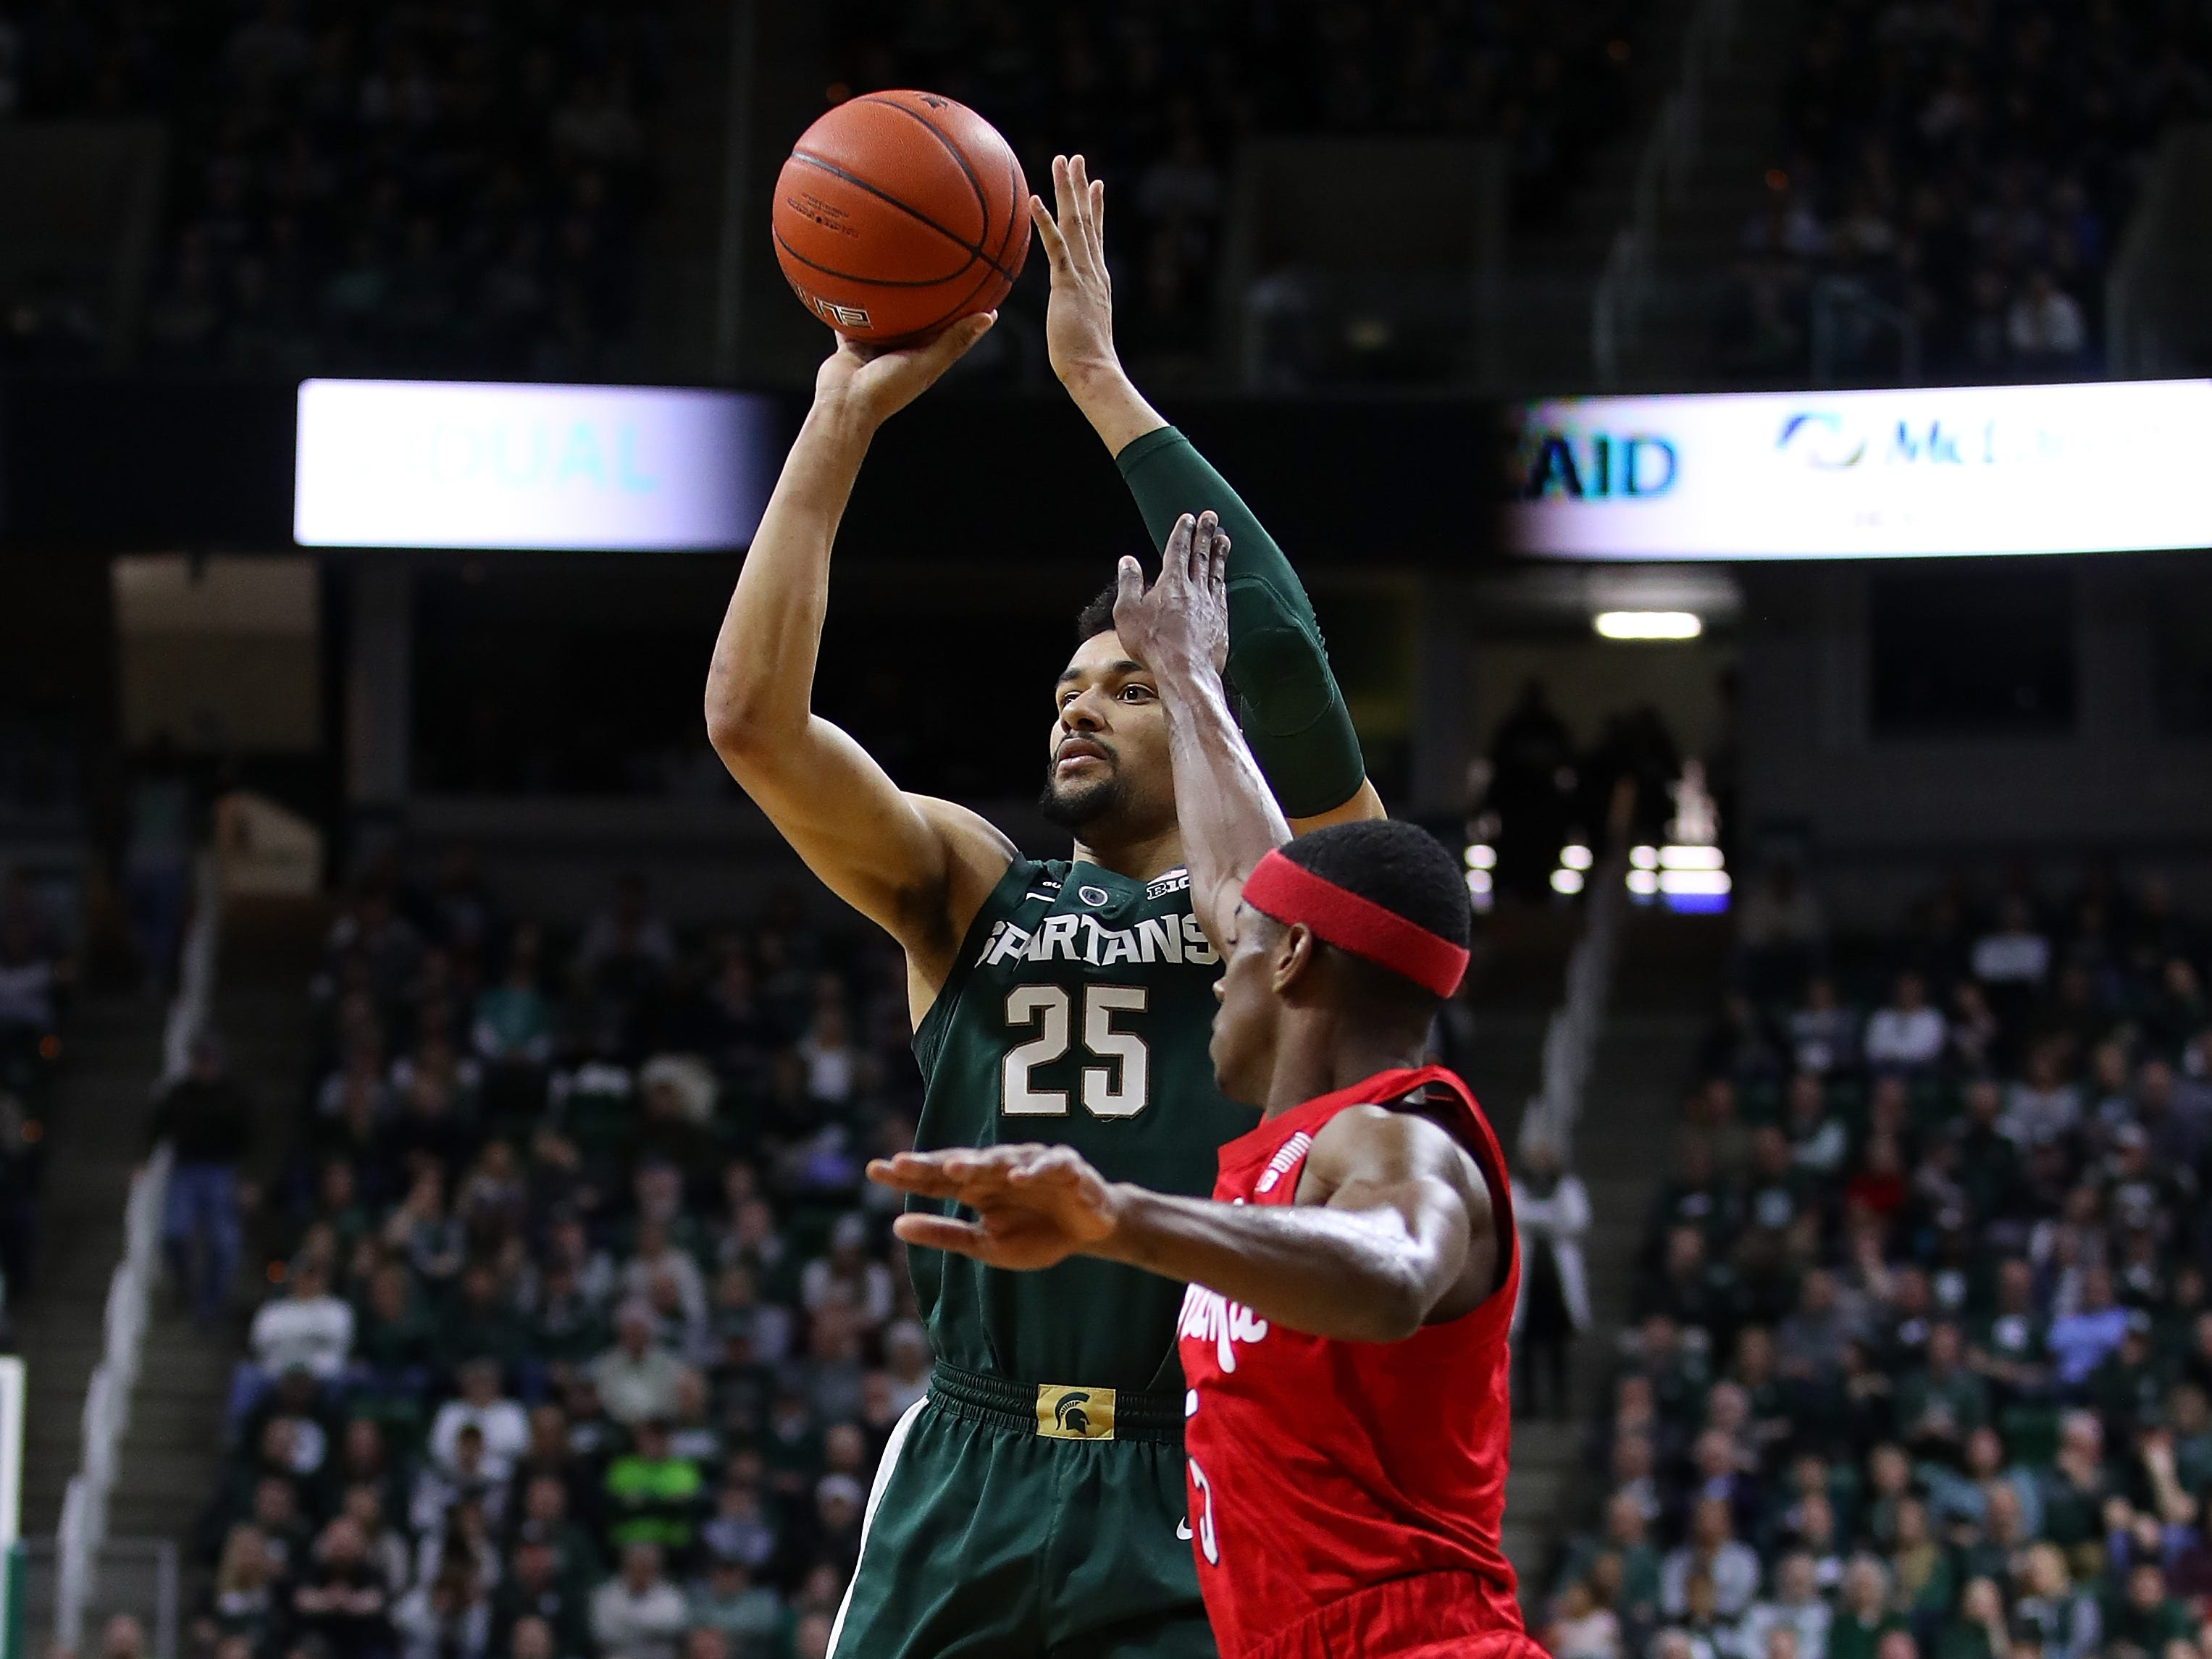 Kenny Goins (25) of the Michigan State Spartans takes a first half shot next to Glynn Watson Jr. (5) of the Nebraska Cornhuskers during the first half at Breslin Center on March 05, 2019.